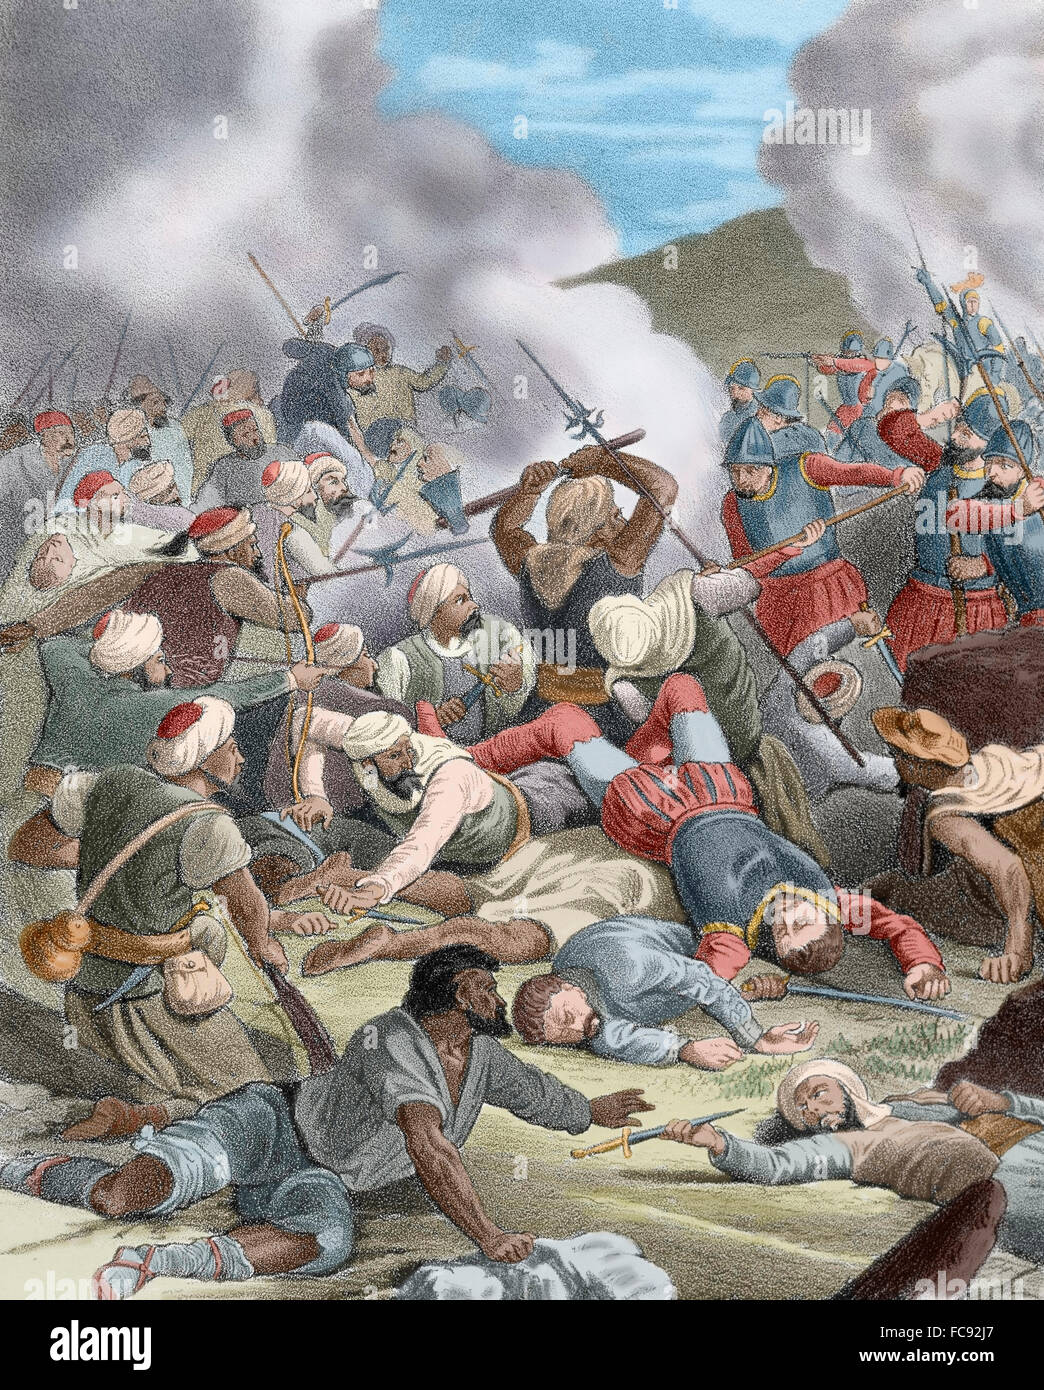 Spain. 15th century. Insurrection of the Moors in Valencia. Fighting in the battlefield against the Christians. - Stock Image